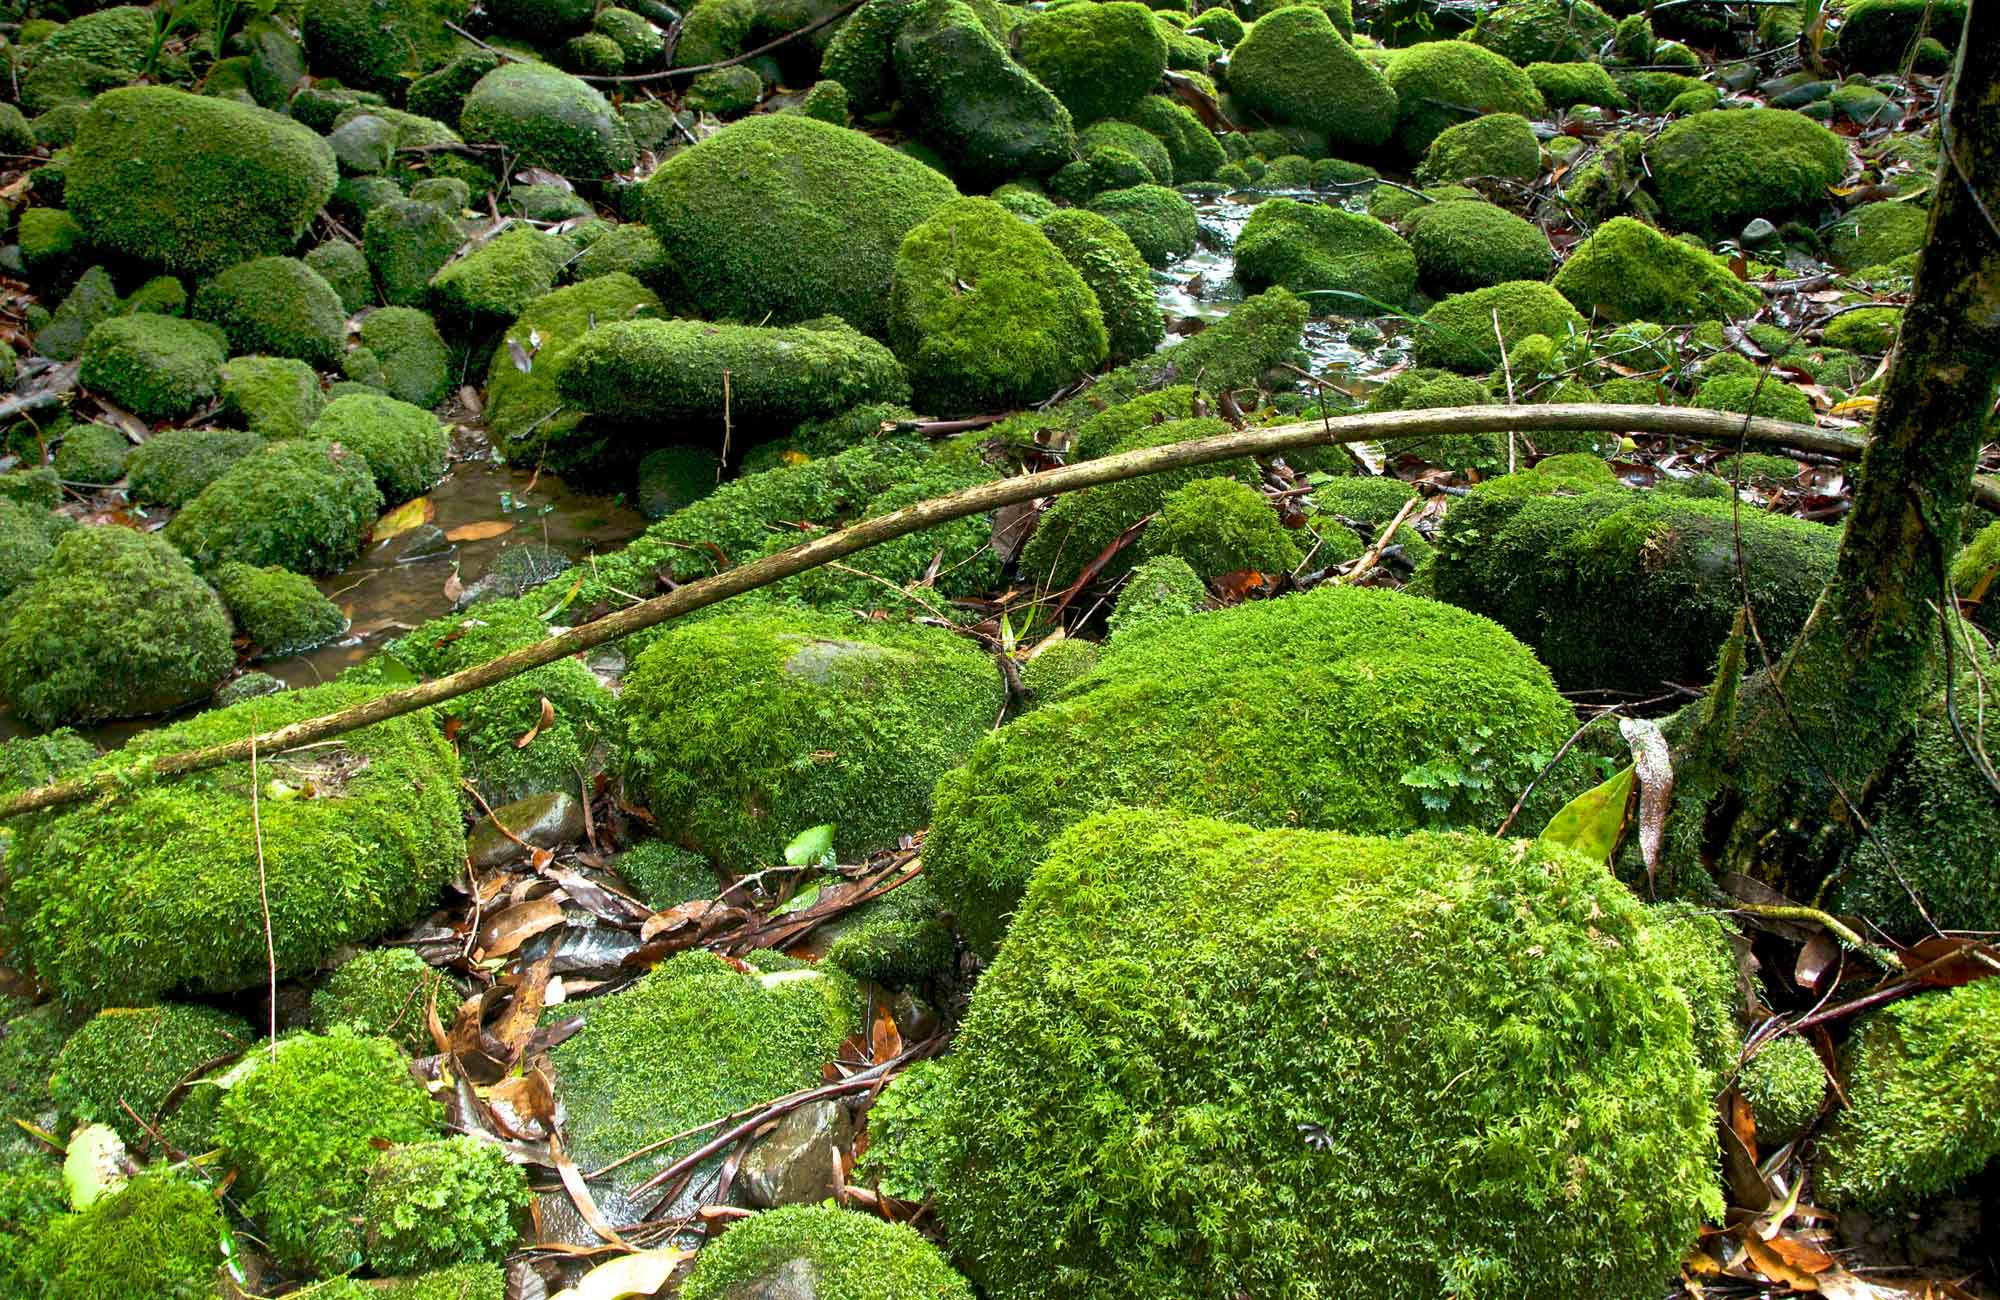 Moss covered rocks. Photo: John Spencer